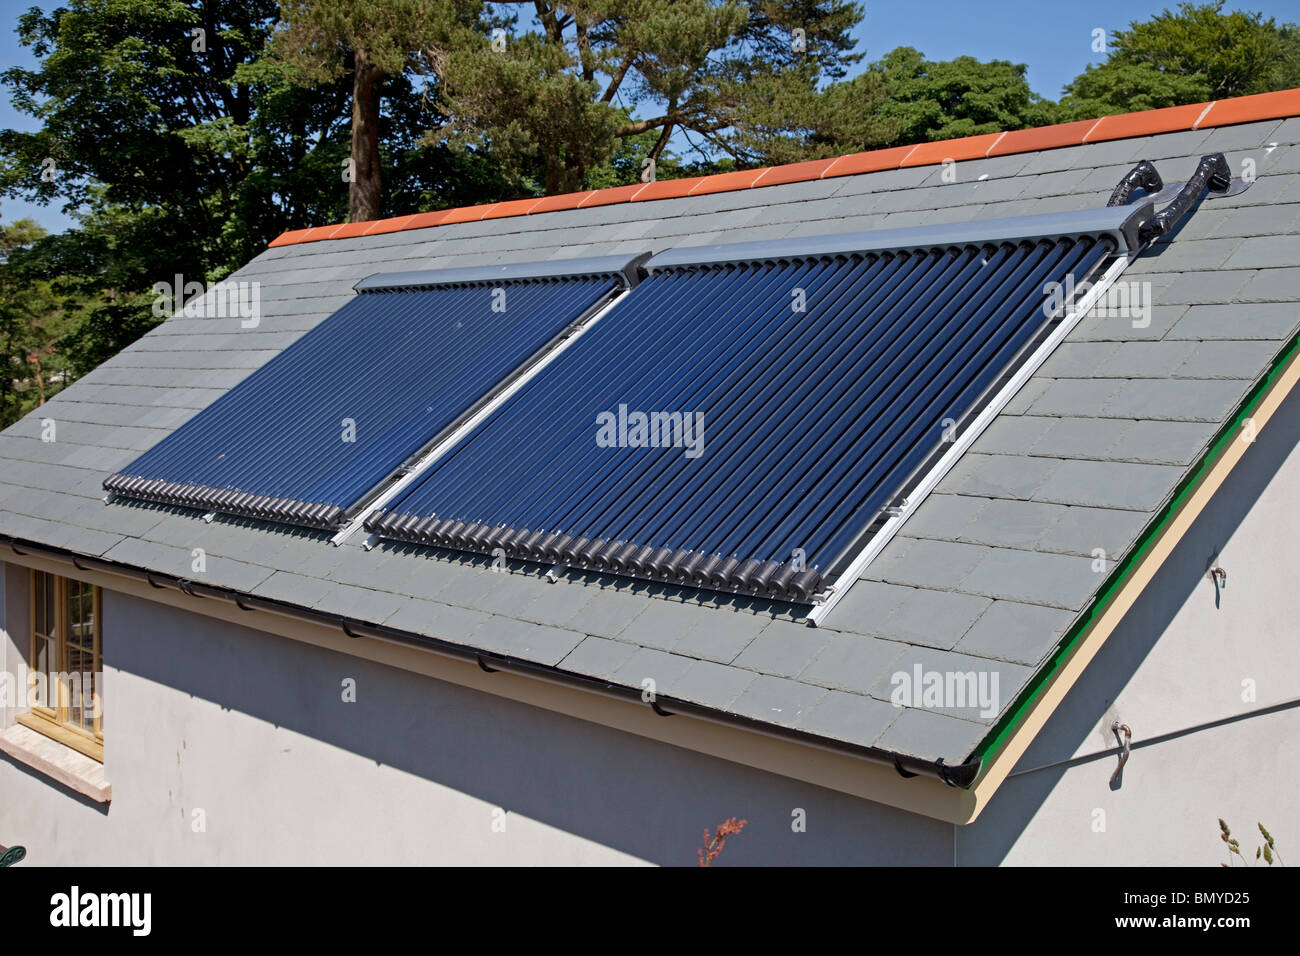 Solar thermal panels on roof of Woody Bay Station Parracombe North Devon UK - Stock Image